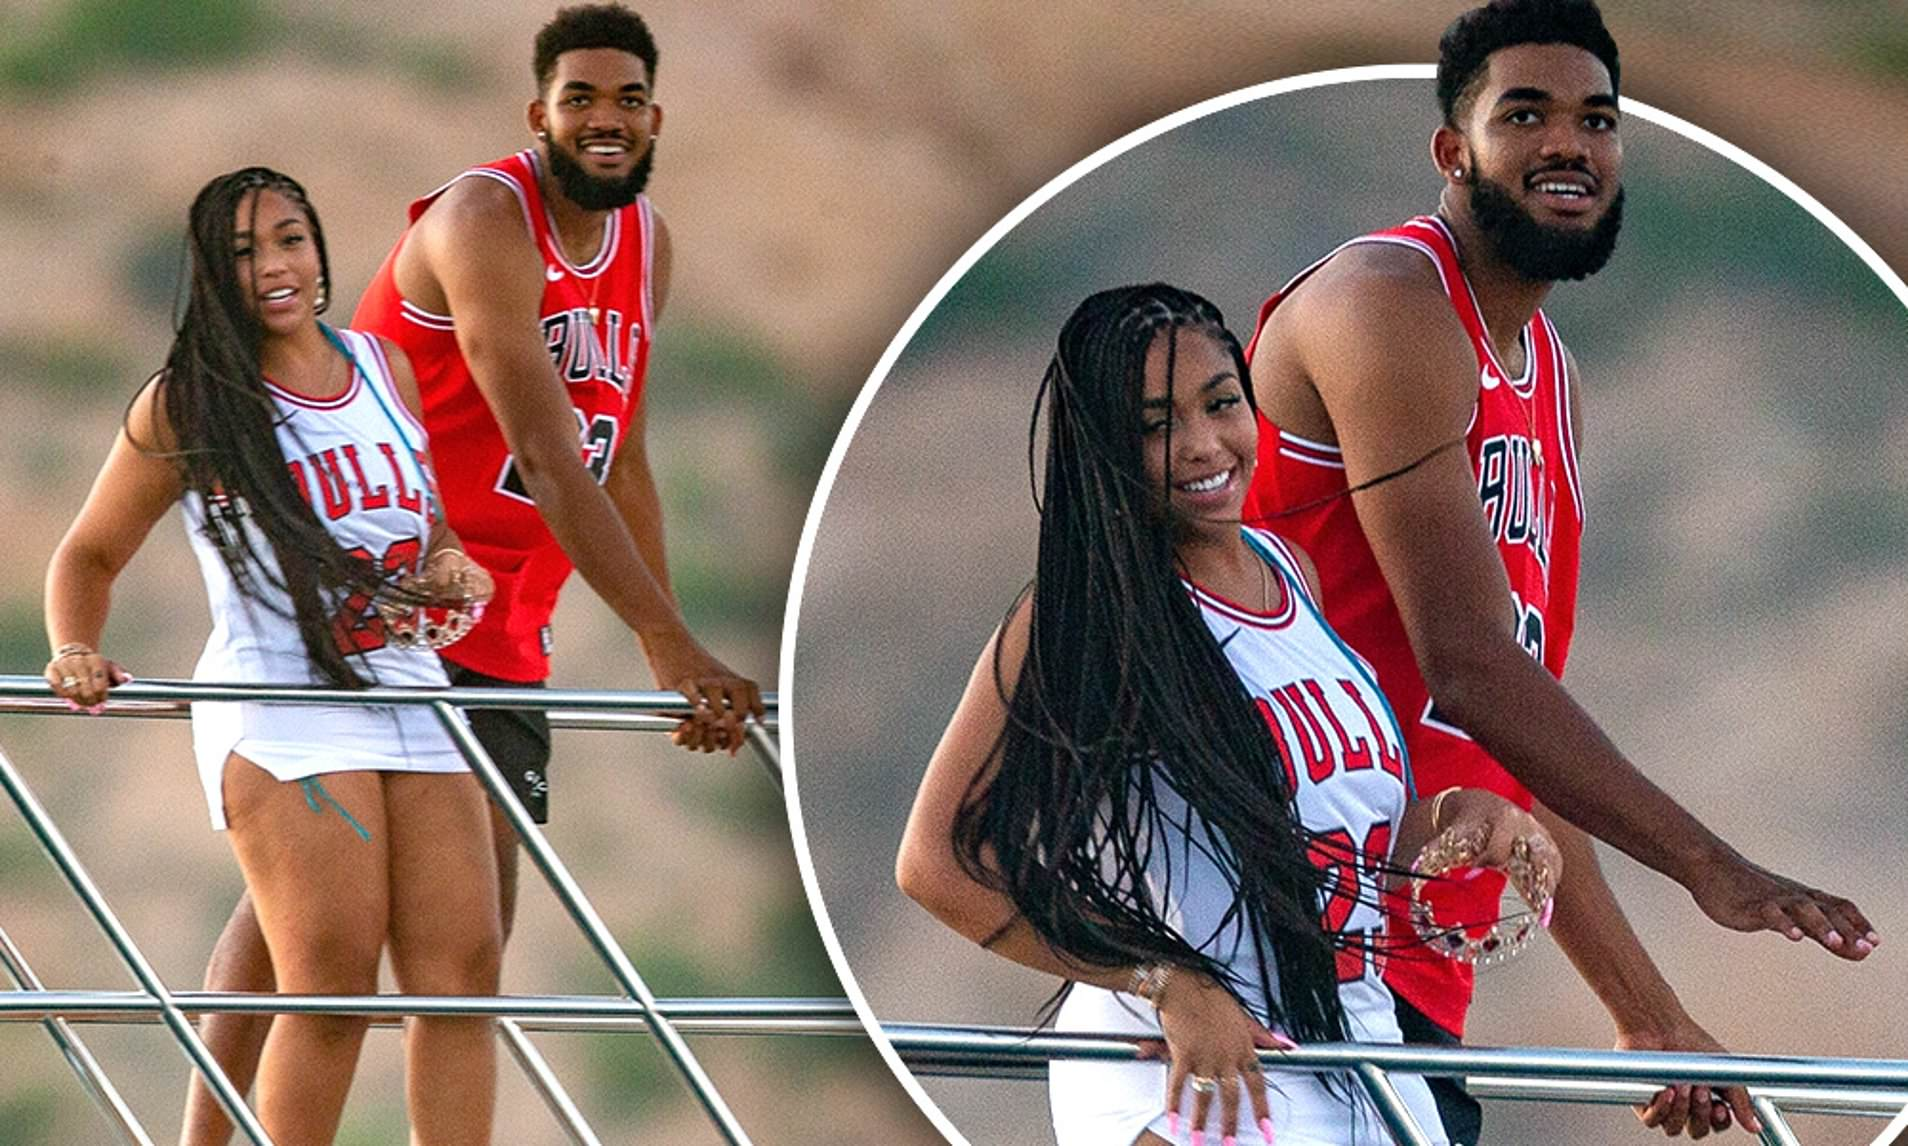 jordyn-woods-has-the-best-time-with-her-bf-karl-anthony-towns-see-their-photos-together